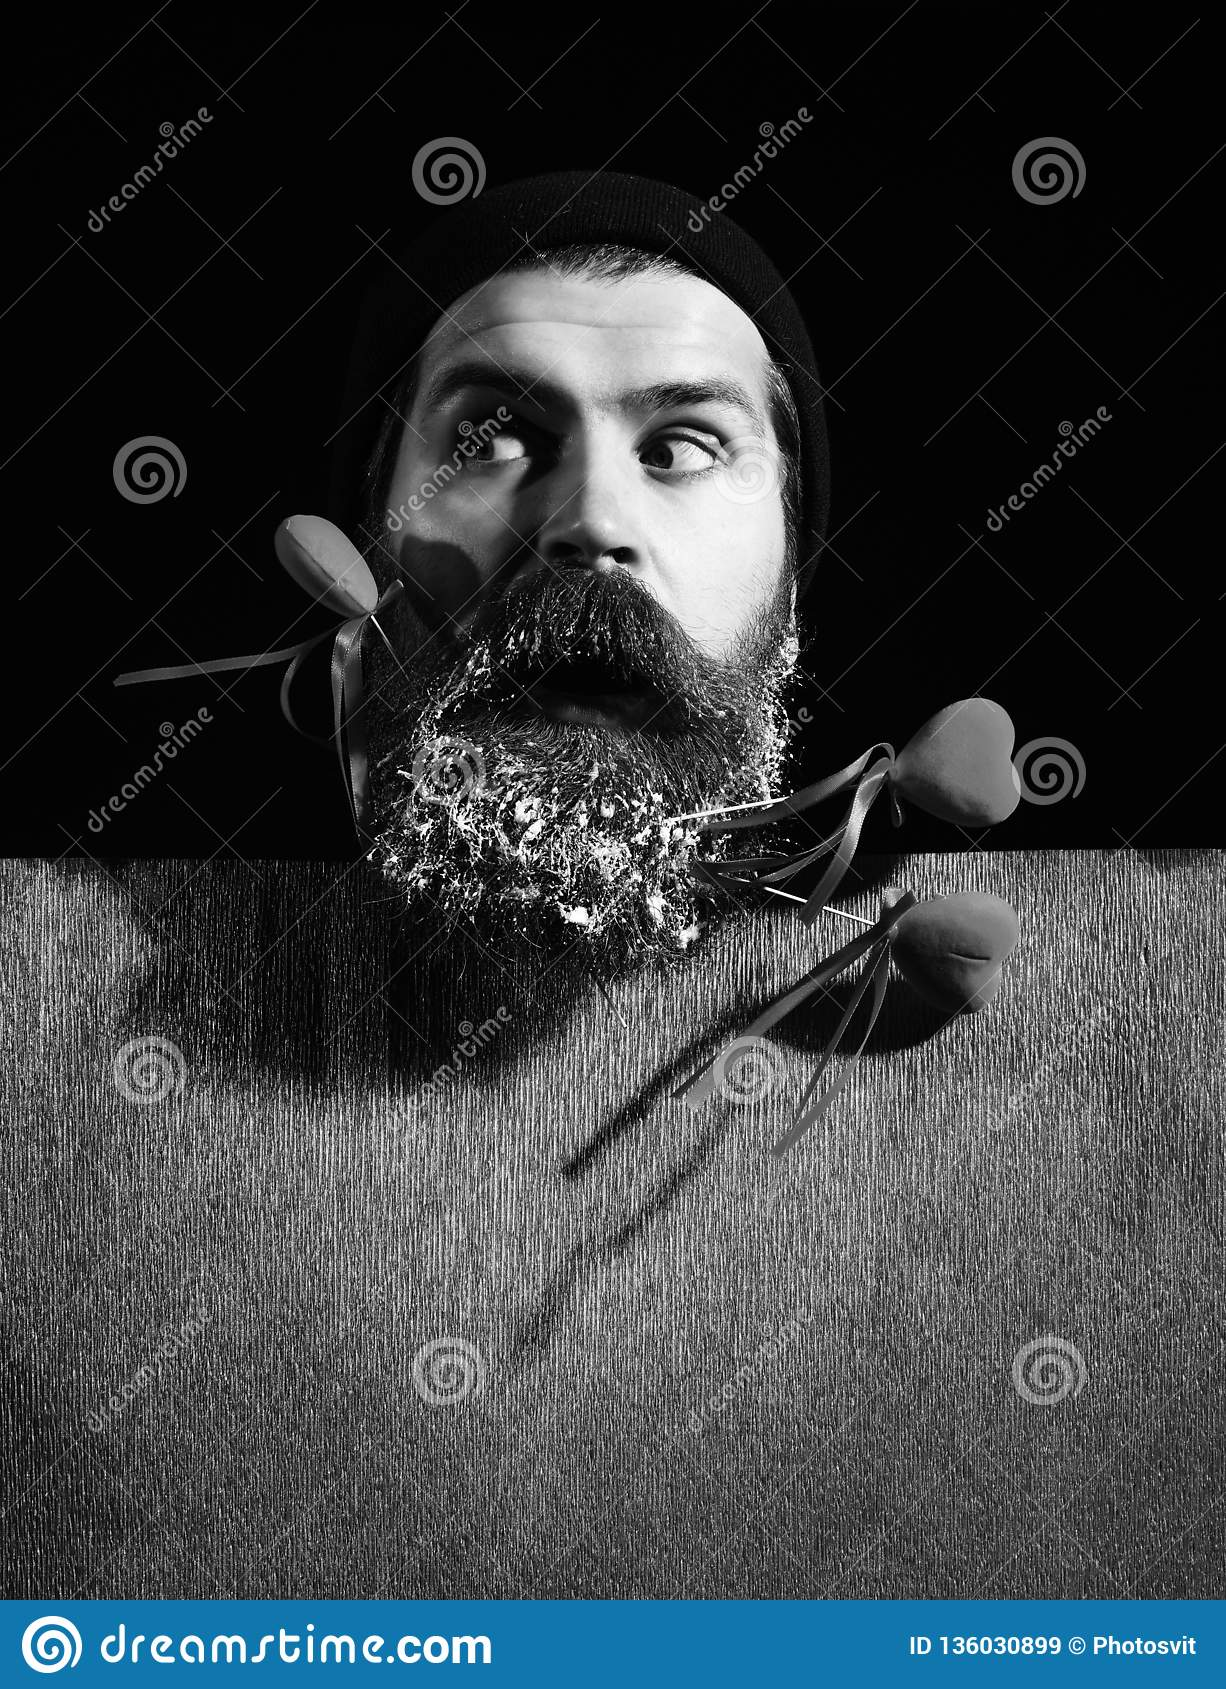 103e4f55977 Handsome bearded man or guy in winter hat with fashionable mustache on  surprised face and snow in beard with decorative valentines hearts on  sticks near red ...